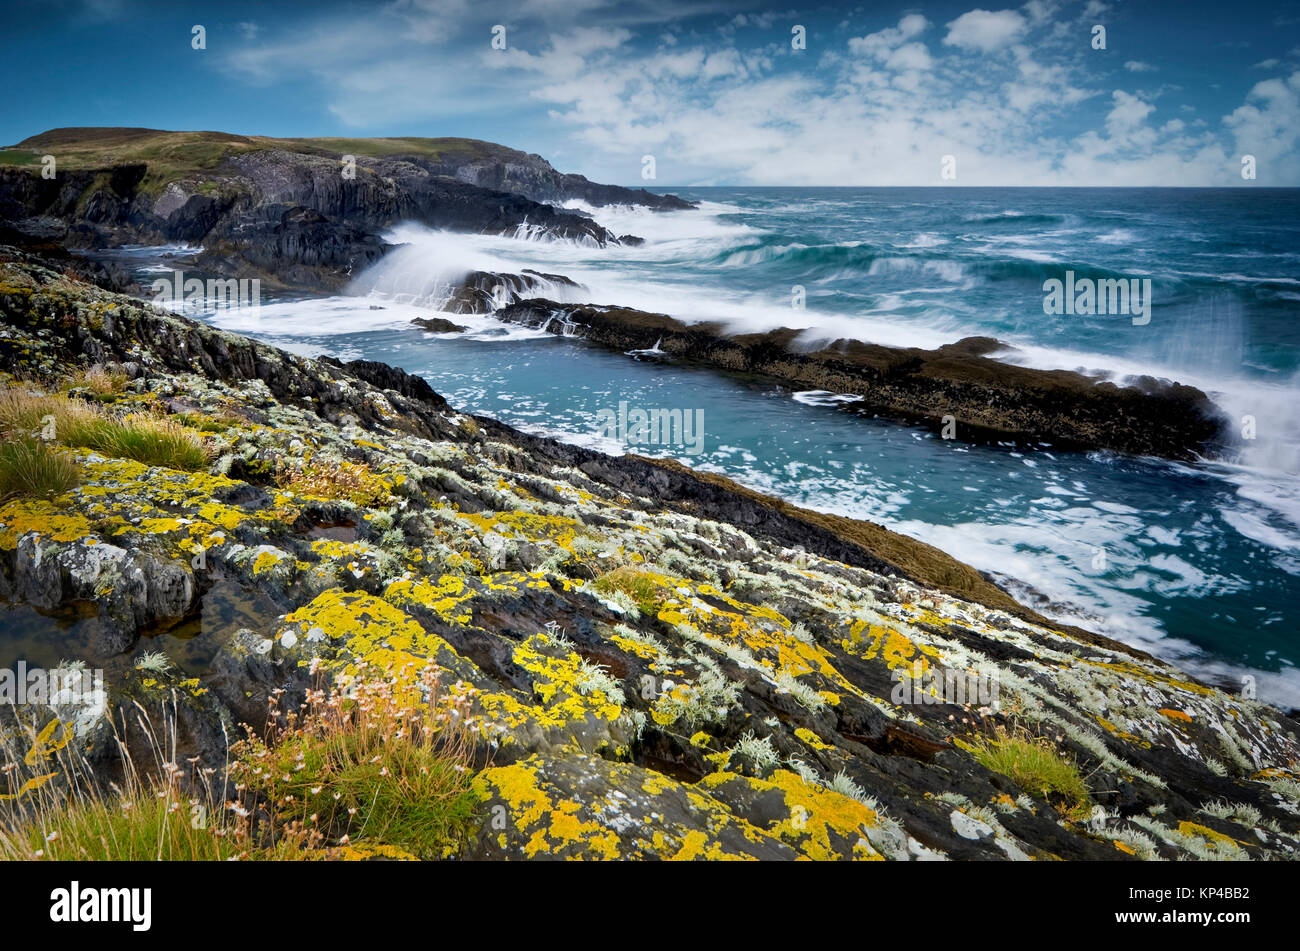 Rocky coast of Atlantic Ocean during stormy weather, South West of Ireland - Stock Image